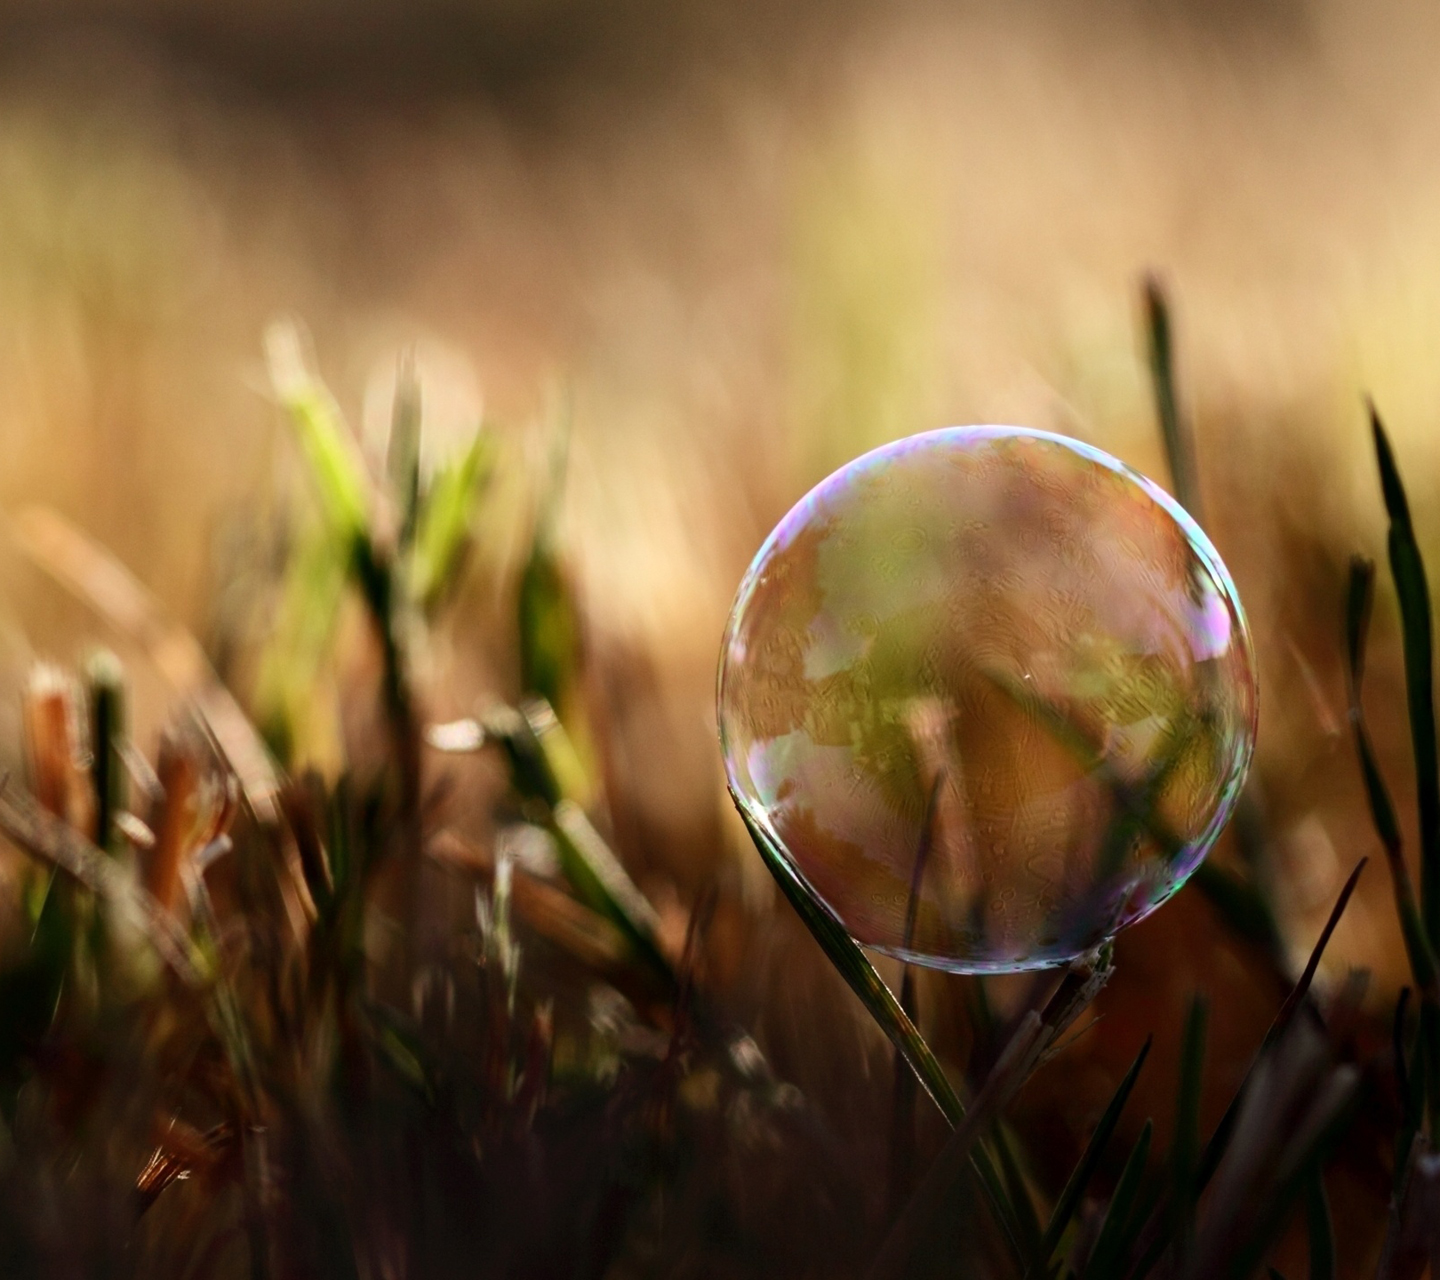 http://1.bp.blogspot.com/-JqbX8wTzX9k/UM-ATl7w5gI/AAAAAAAANMI/LXqqJdV8FRU/s1600/soap-bubble-on-grass-samsung-galaxy-s3-wallpaper.jpg